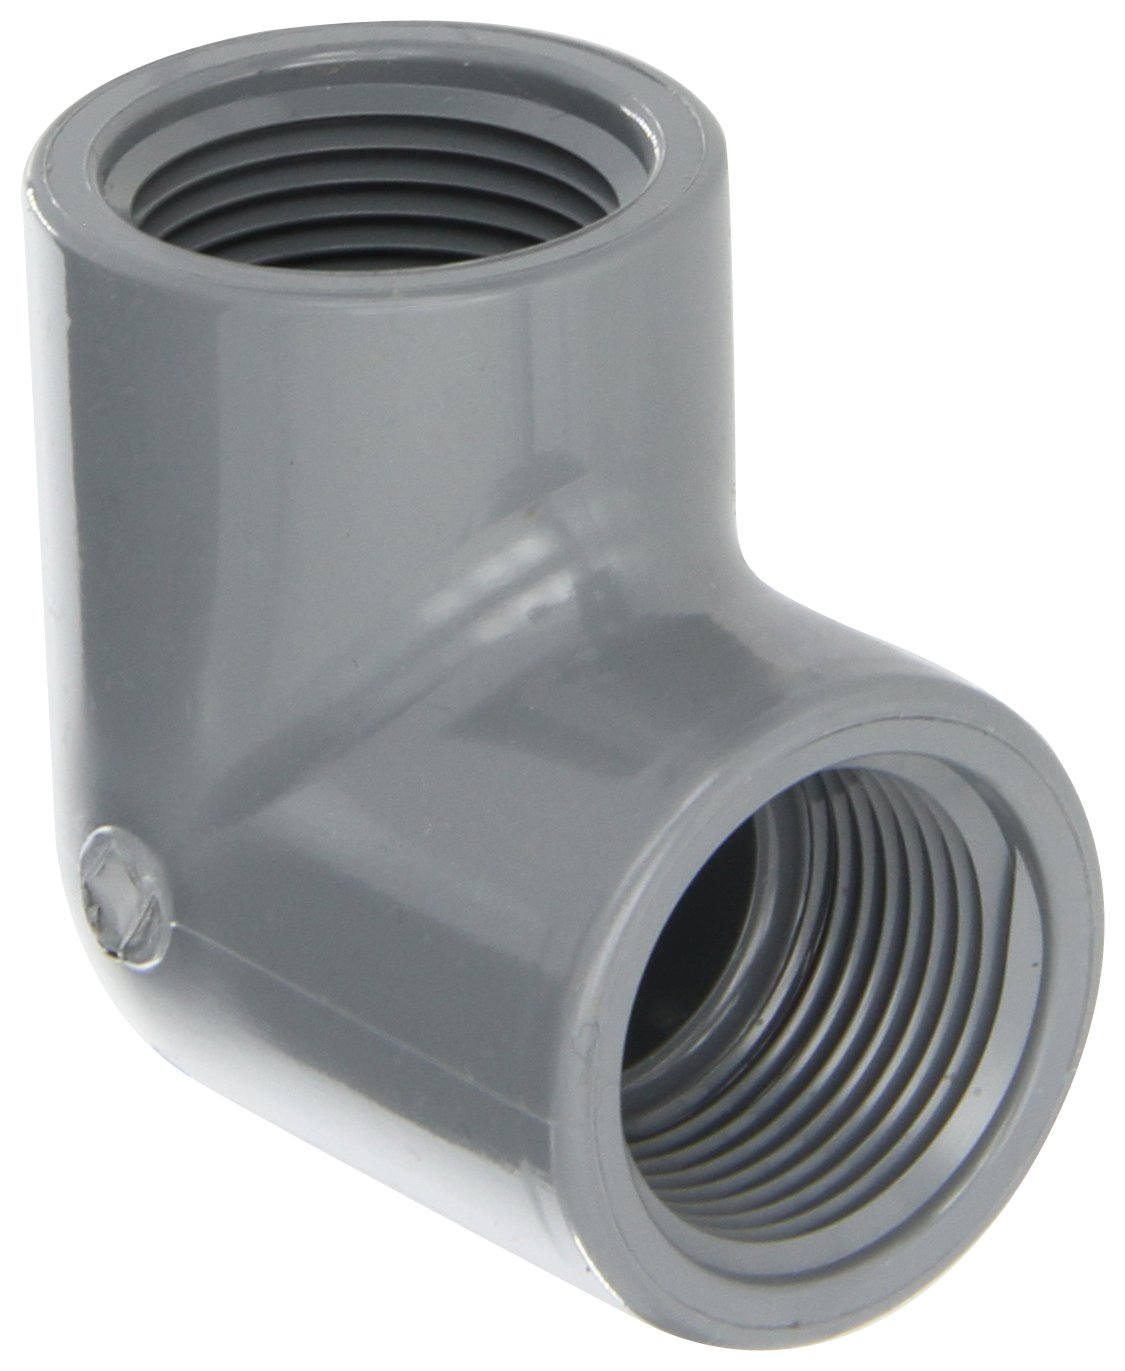 Schedule 80 Tee 1//2 NPT Female NIBCO 4512-3-3 Series PVC Pipe Fitting